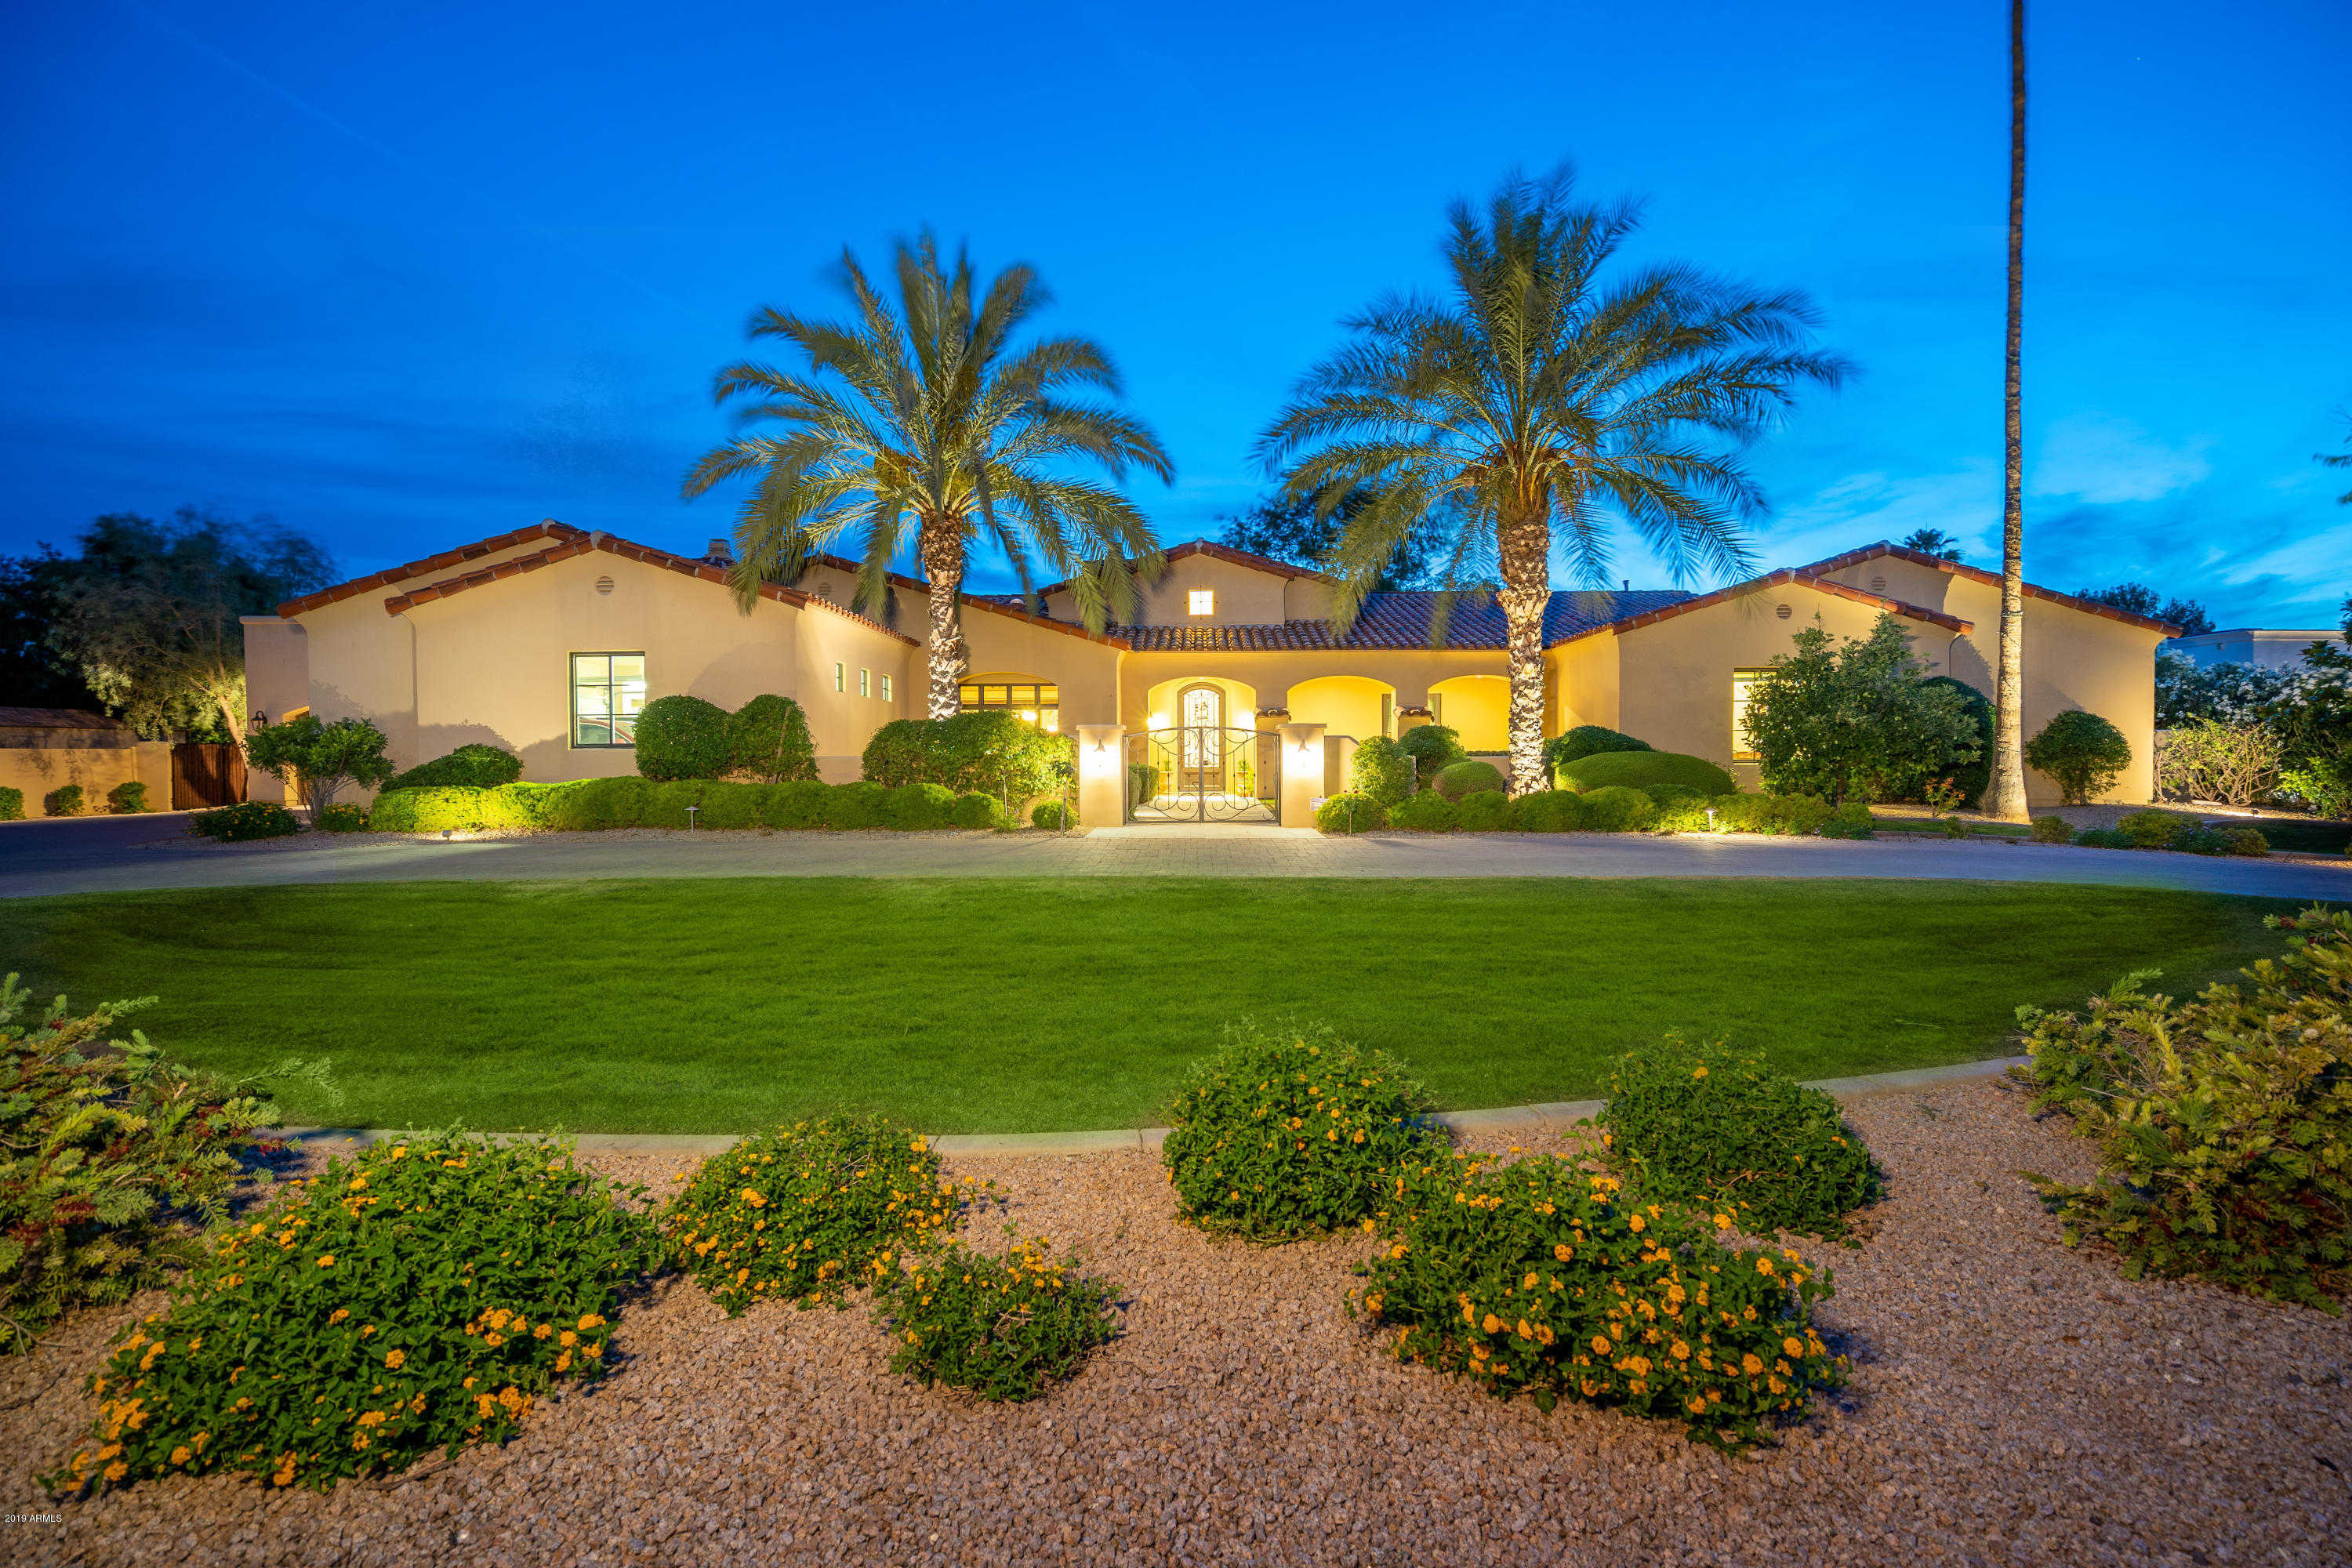 $2,995,000 - 5Br/5Ba - Home for Sale in Stoneview, Paradise Valley